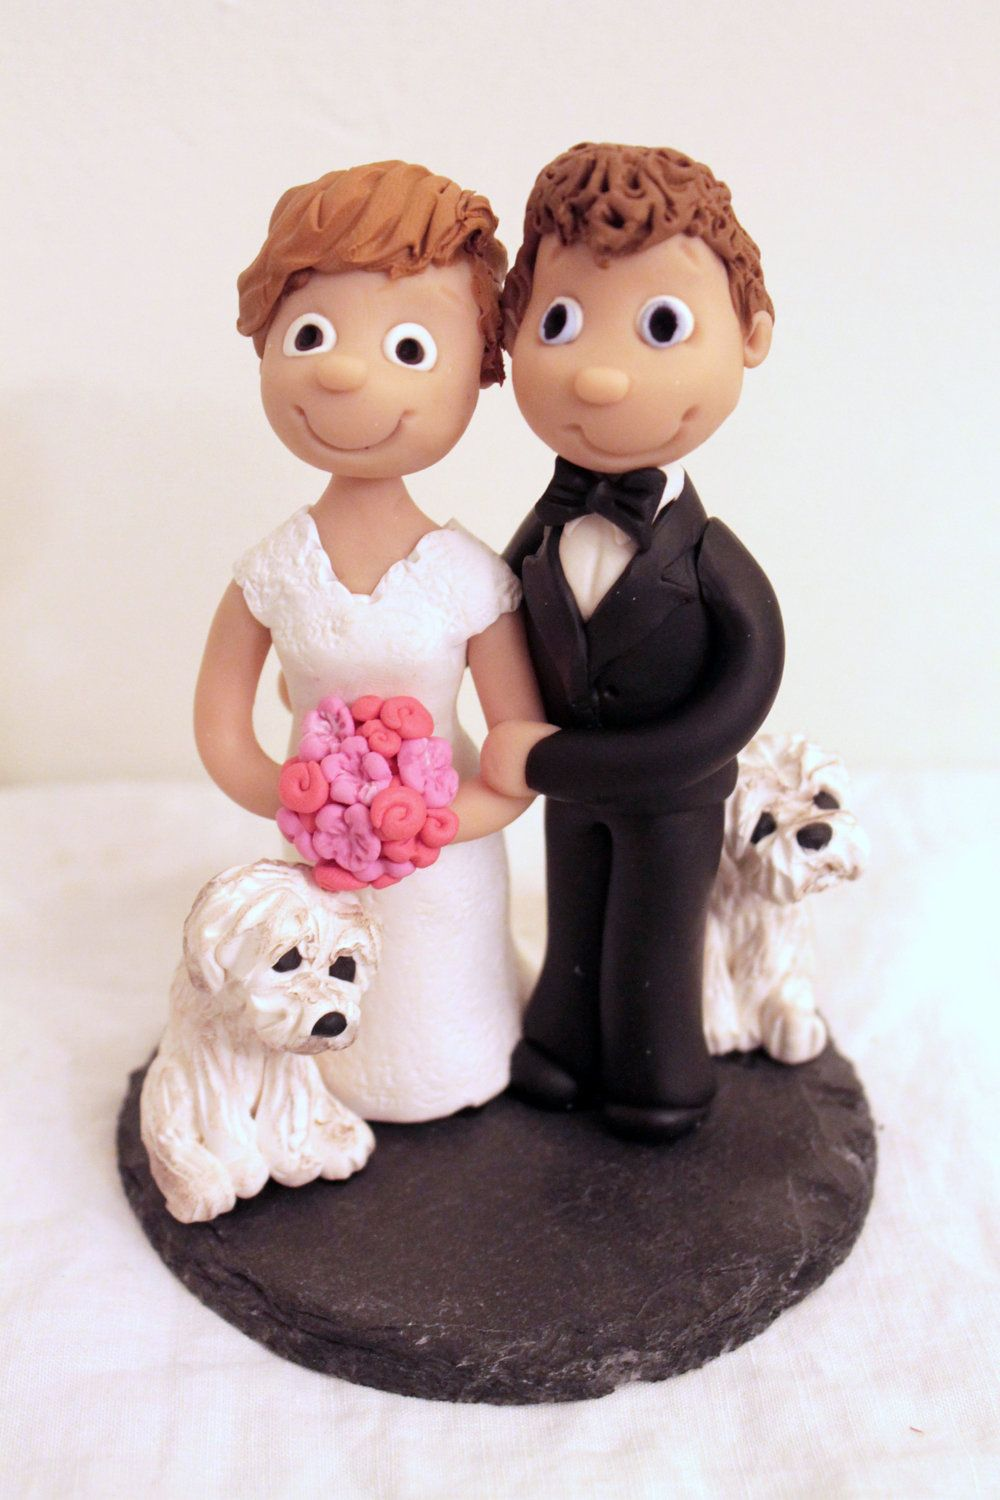 Wedding cake topper custom bride and groom cake topper with dogs